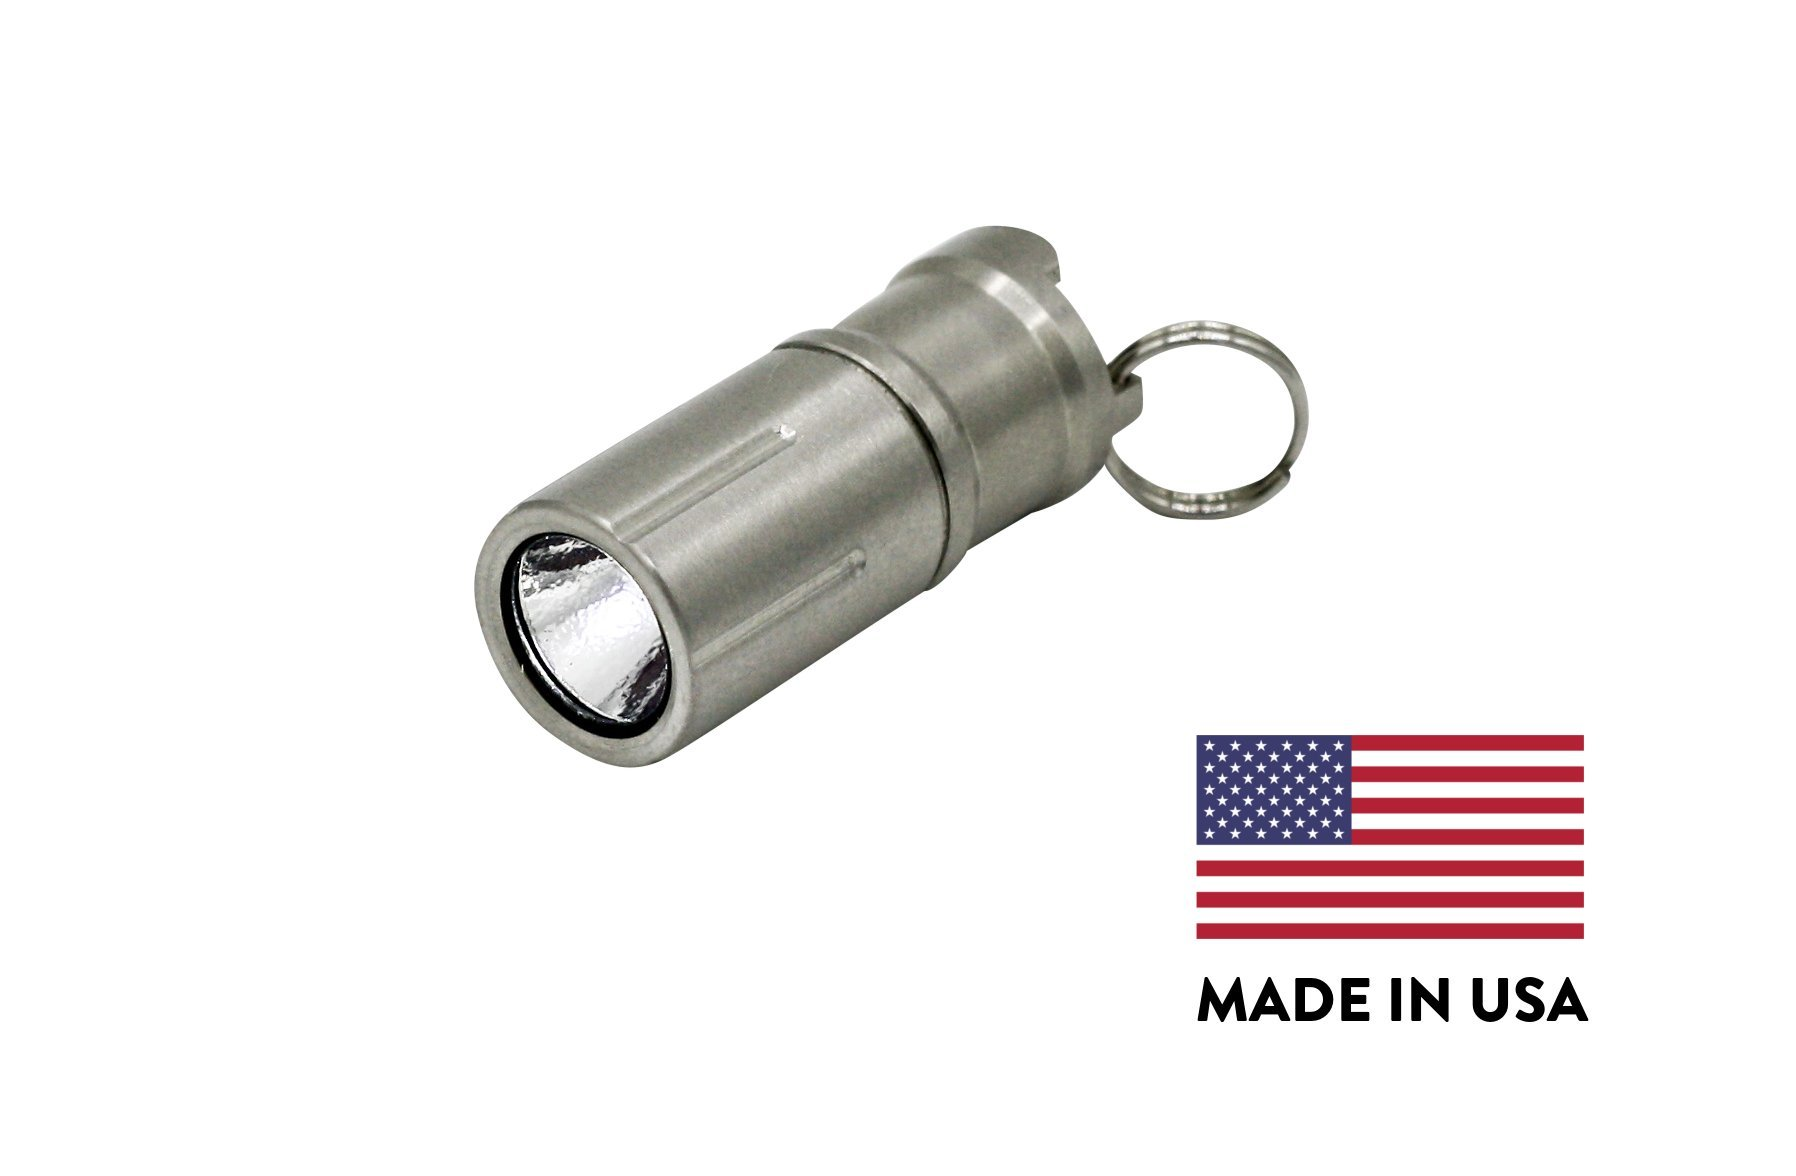 Maratac Peanut LED - Rechargeable Lithium Ion Battery Keychain Flashlight - Made in USA